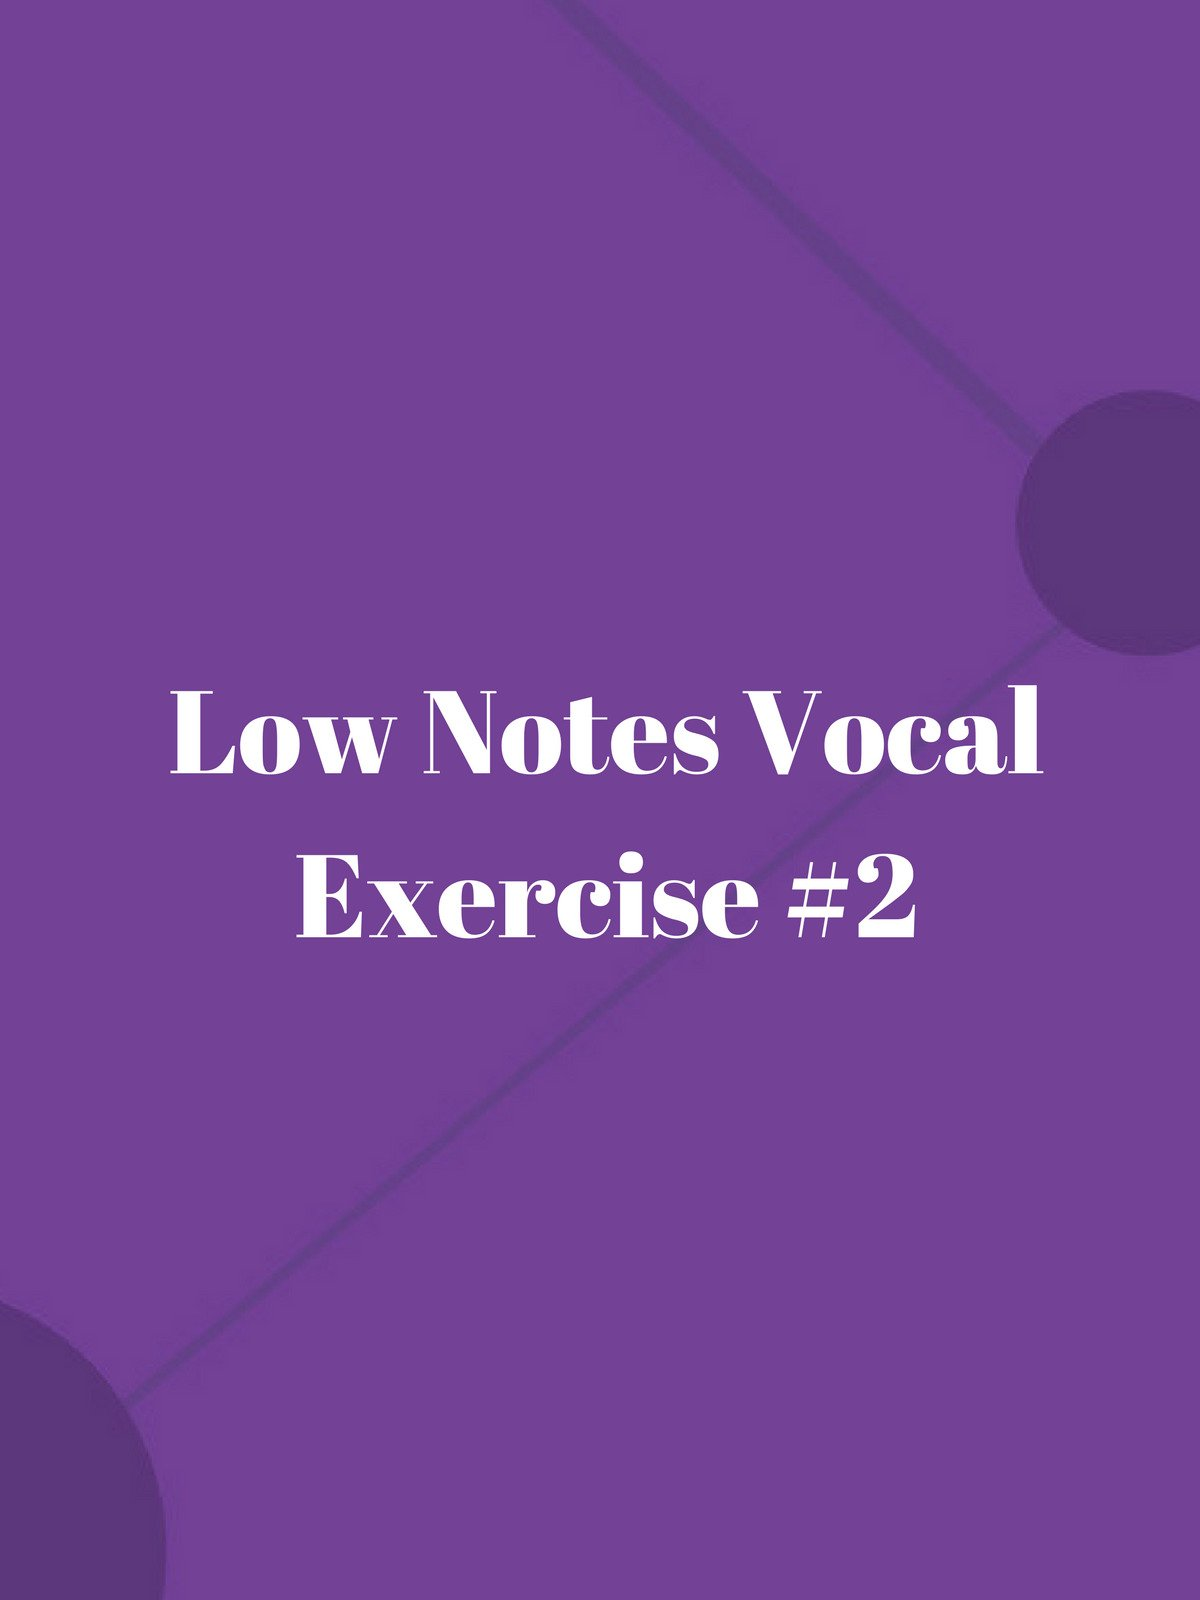 Low Notes Vocal Exercise #2